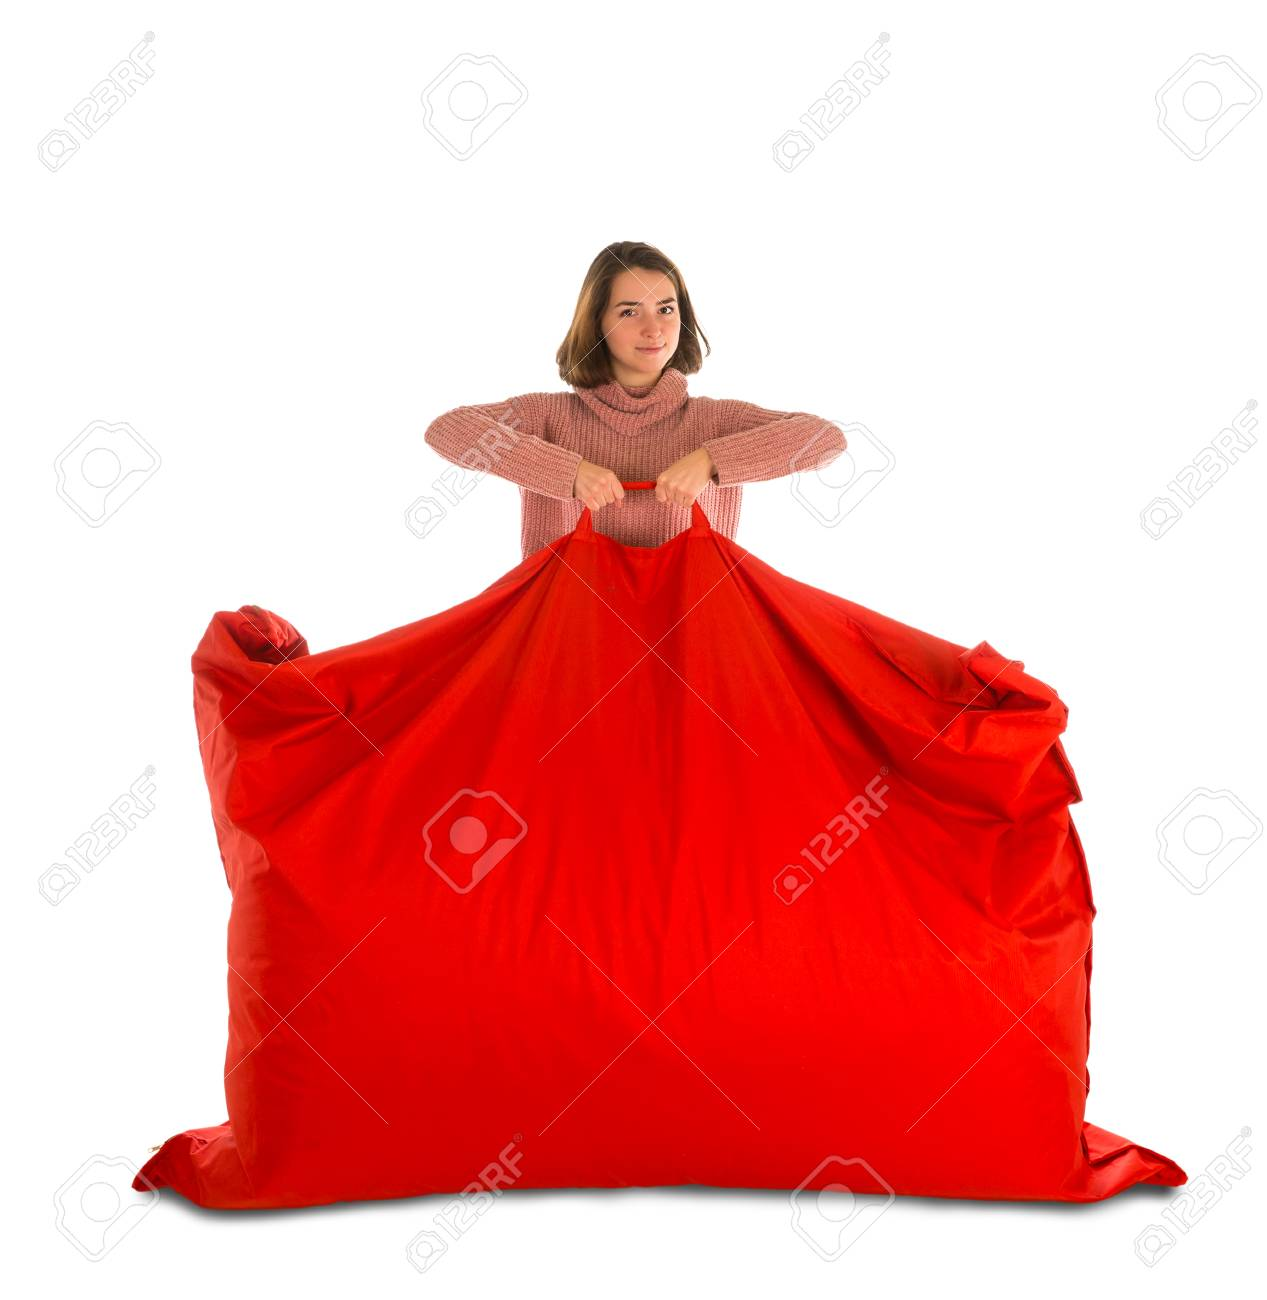 Cool Young Woman Standing And Holding Red Rectangular Shaped Beanbag Ocoug Best Dining Table And Chair Ideas Images Ocougorg